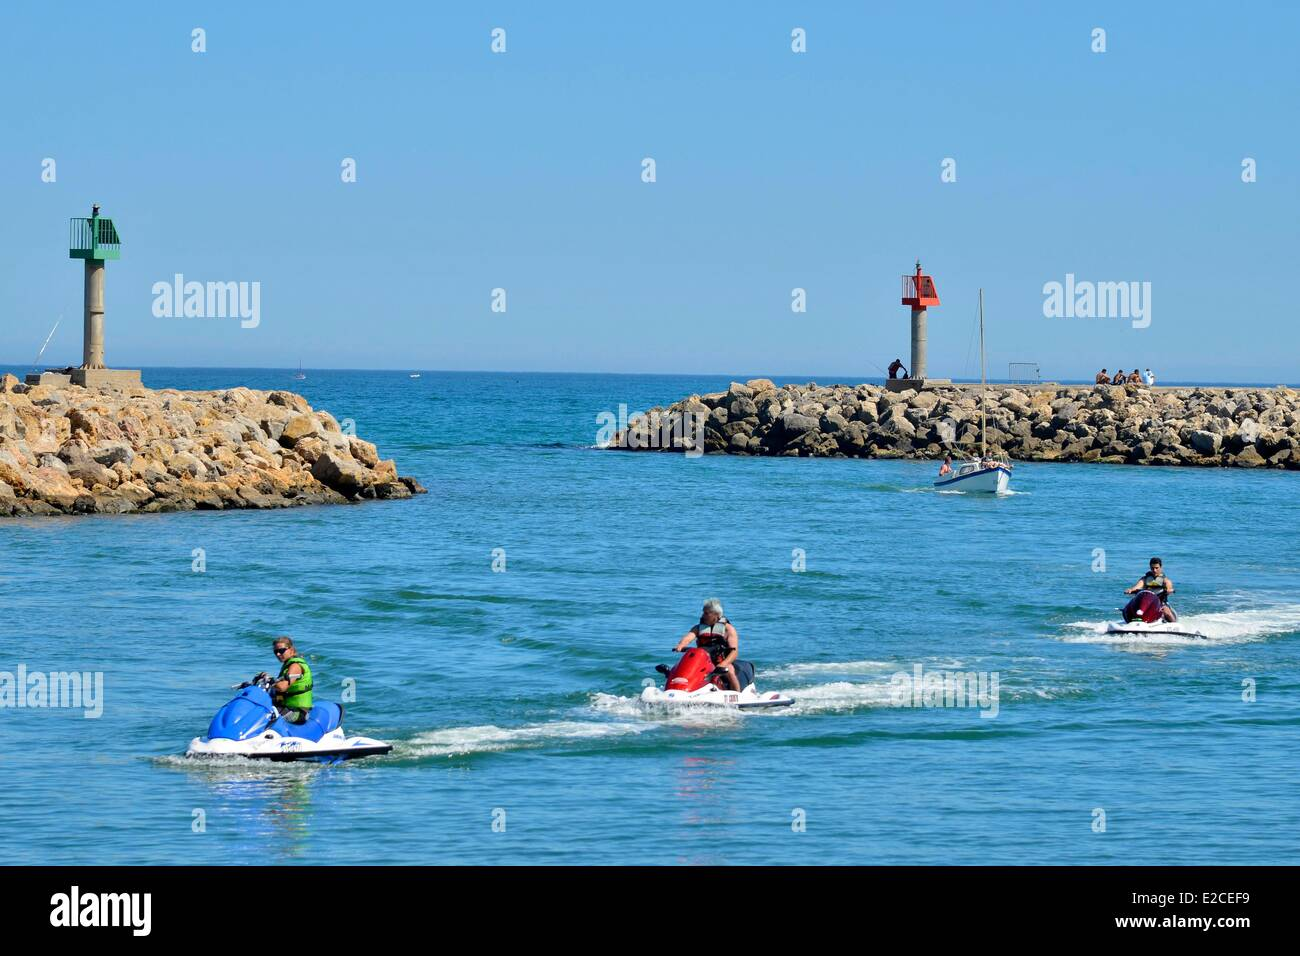 France, Herault, Valras Plage, Jets ski in the mouth of the marina behind the pier - Stock Image